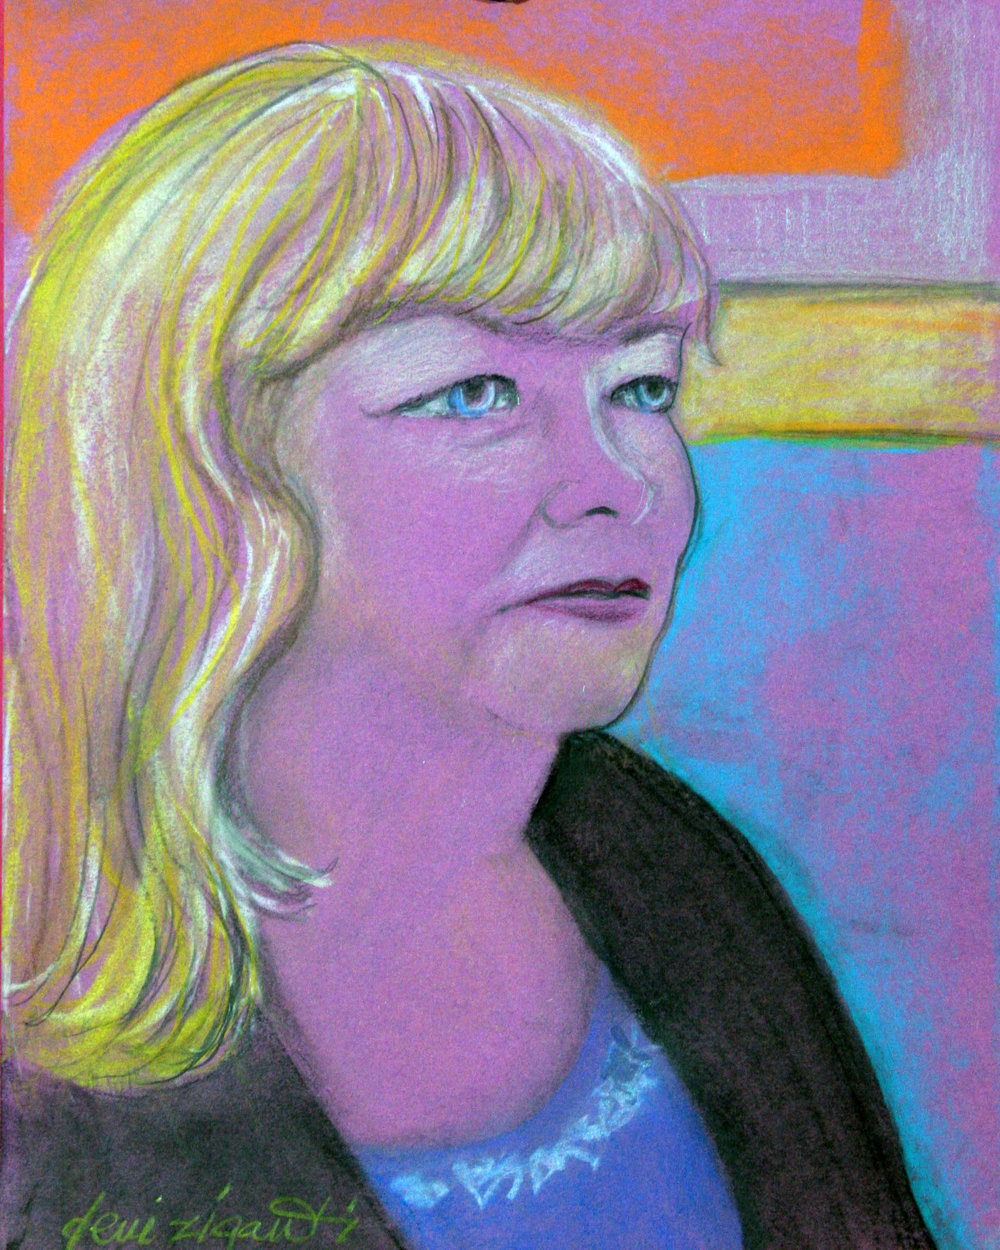 Deni Ziganti did this pastel drawing.